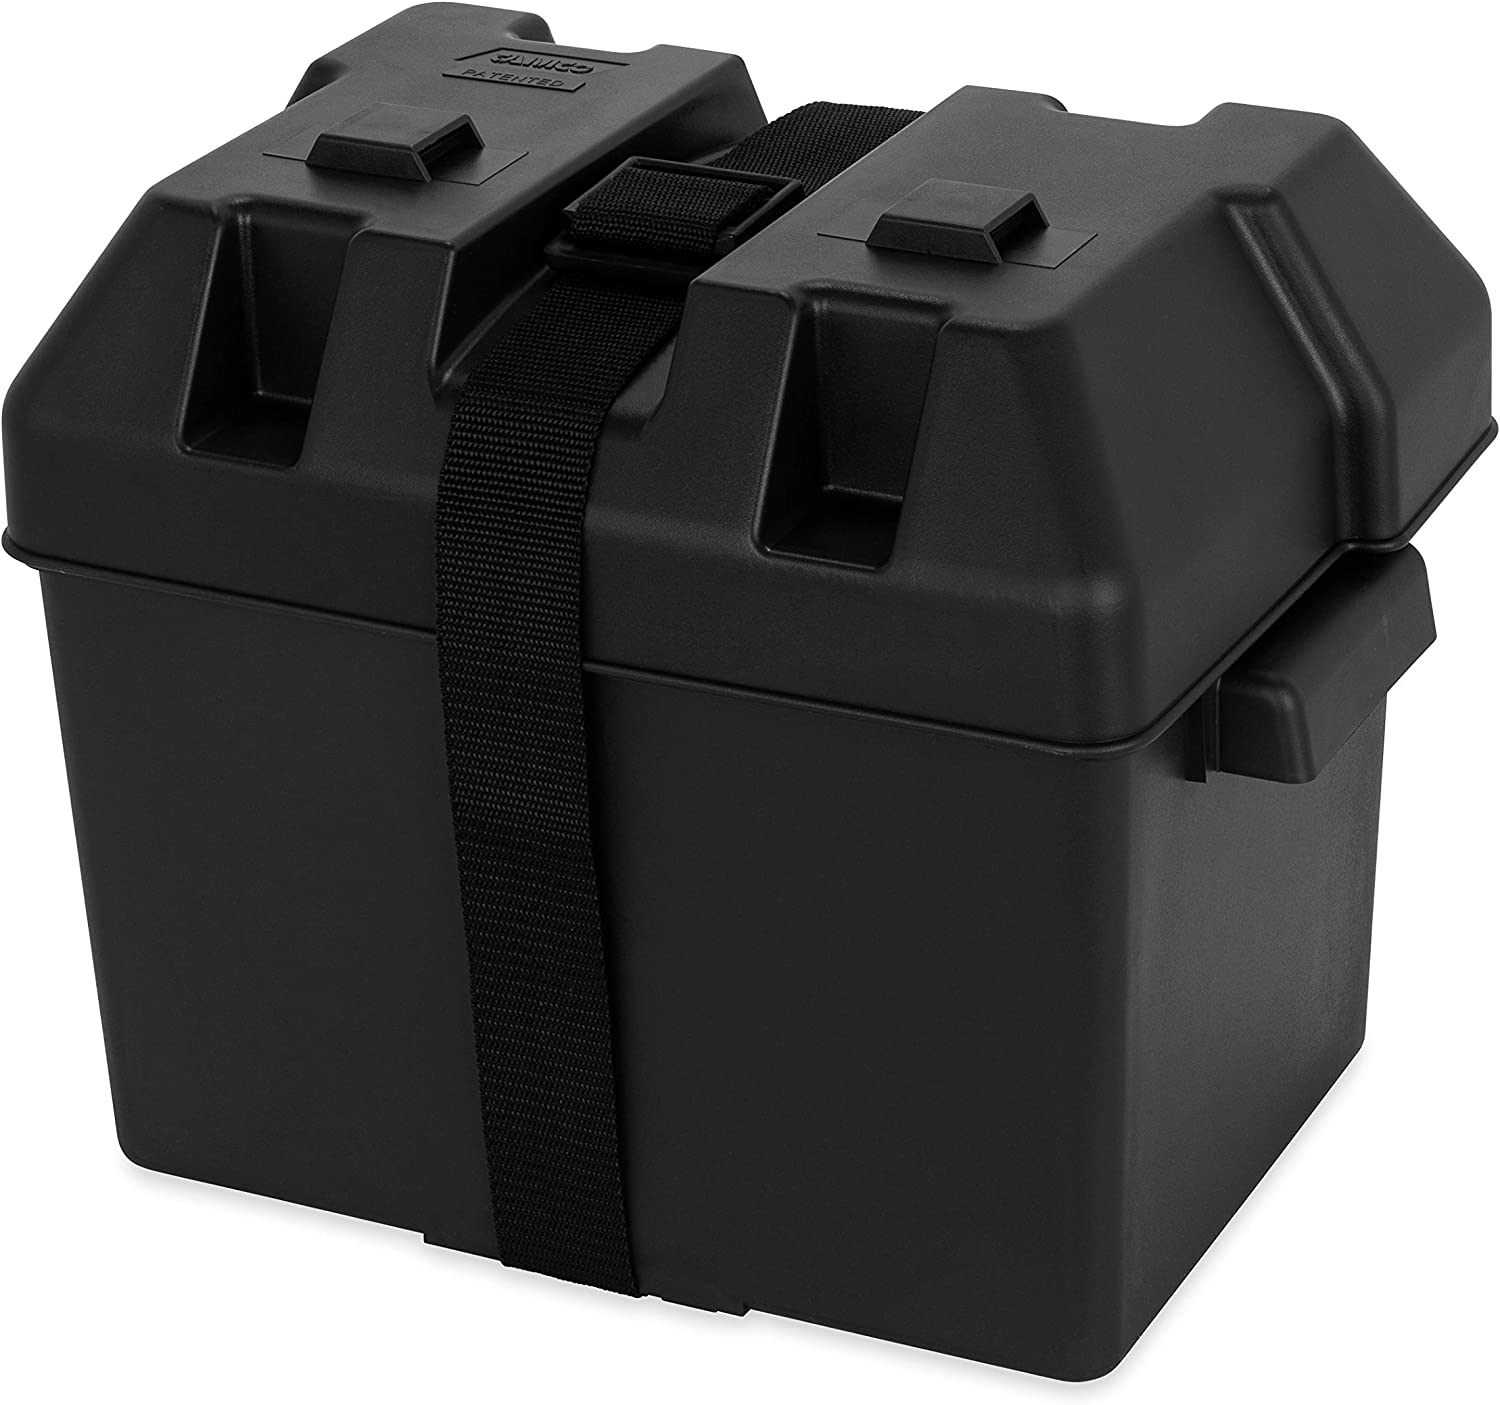 Camco Heavy Duty Battery Box with Straps